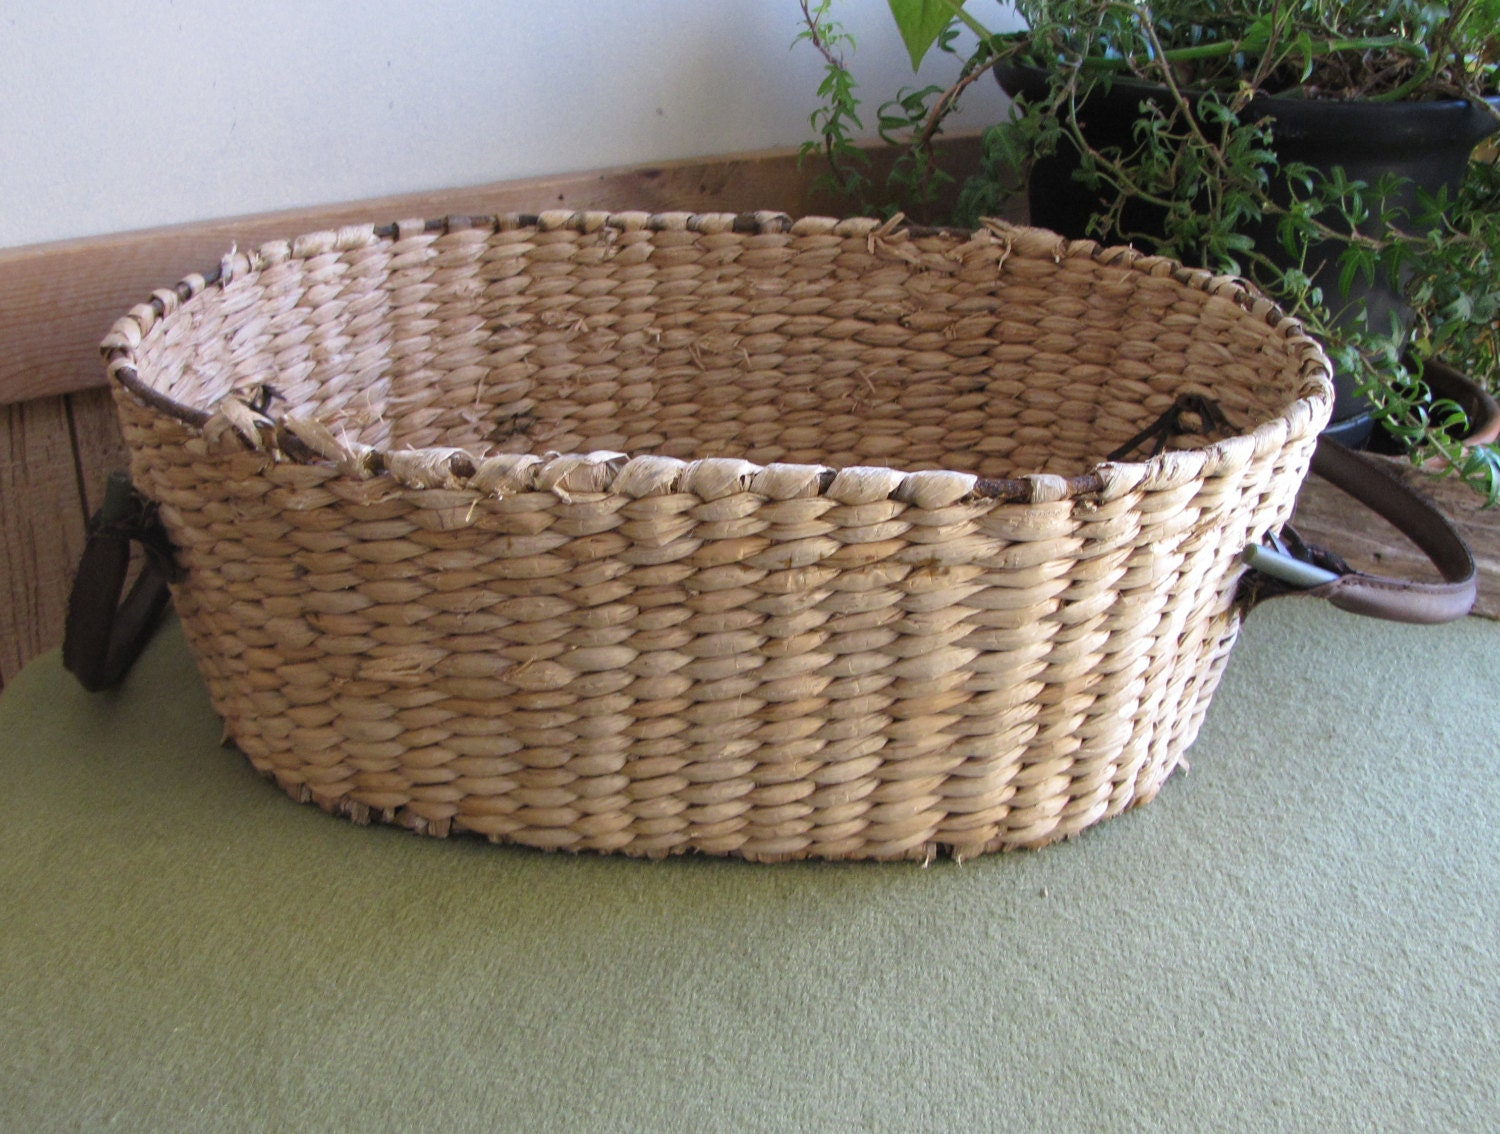 Vintage Oval Straw Basket Garden Trug With Leather Handles Iron Framed